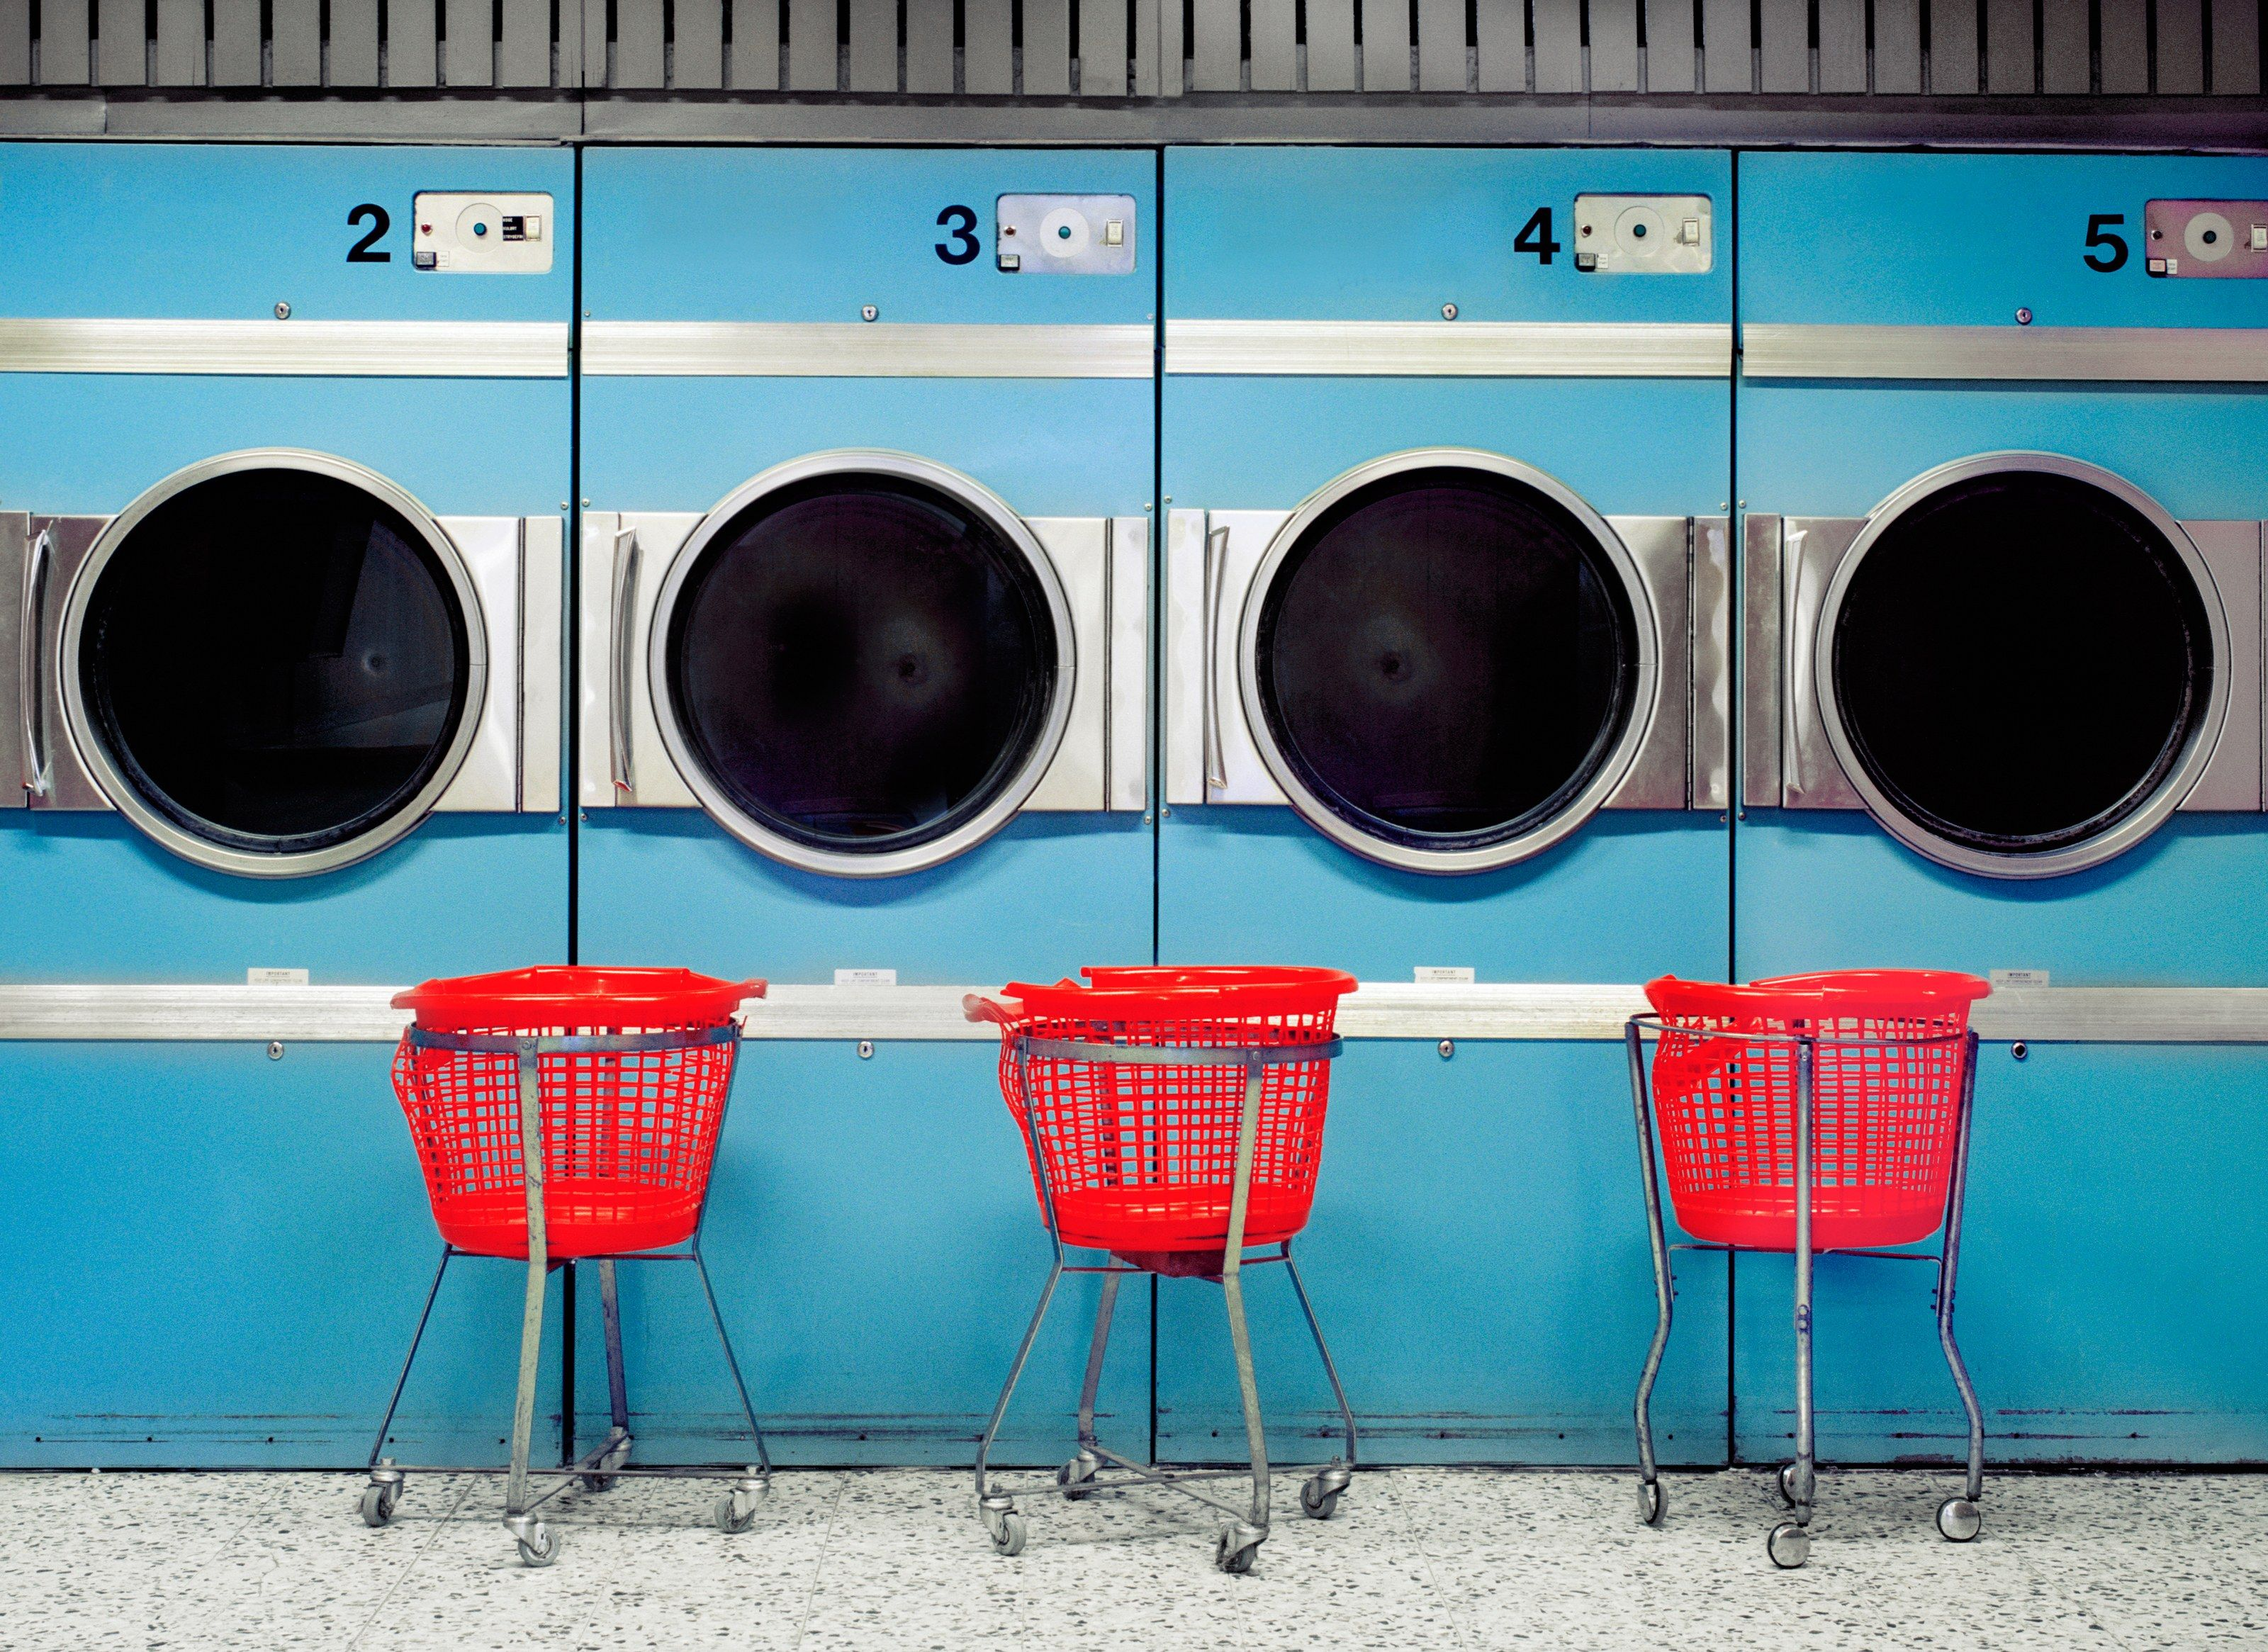 16 Old School Laundromats That Are So Bad They Re Good Laundry Shop Laundromat Laundry